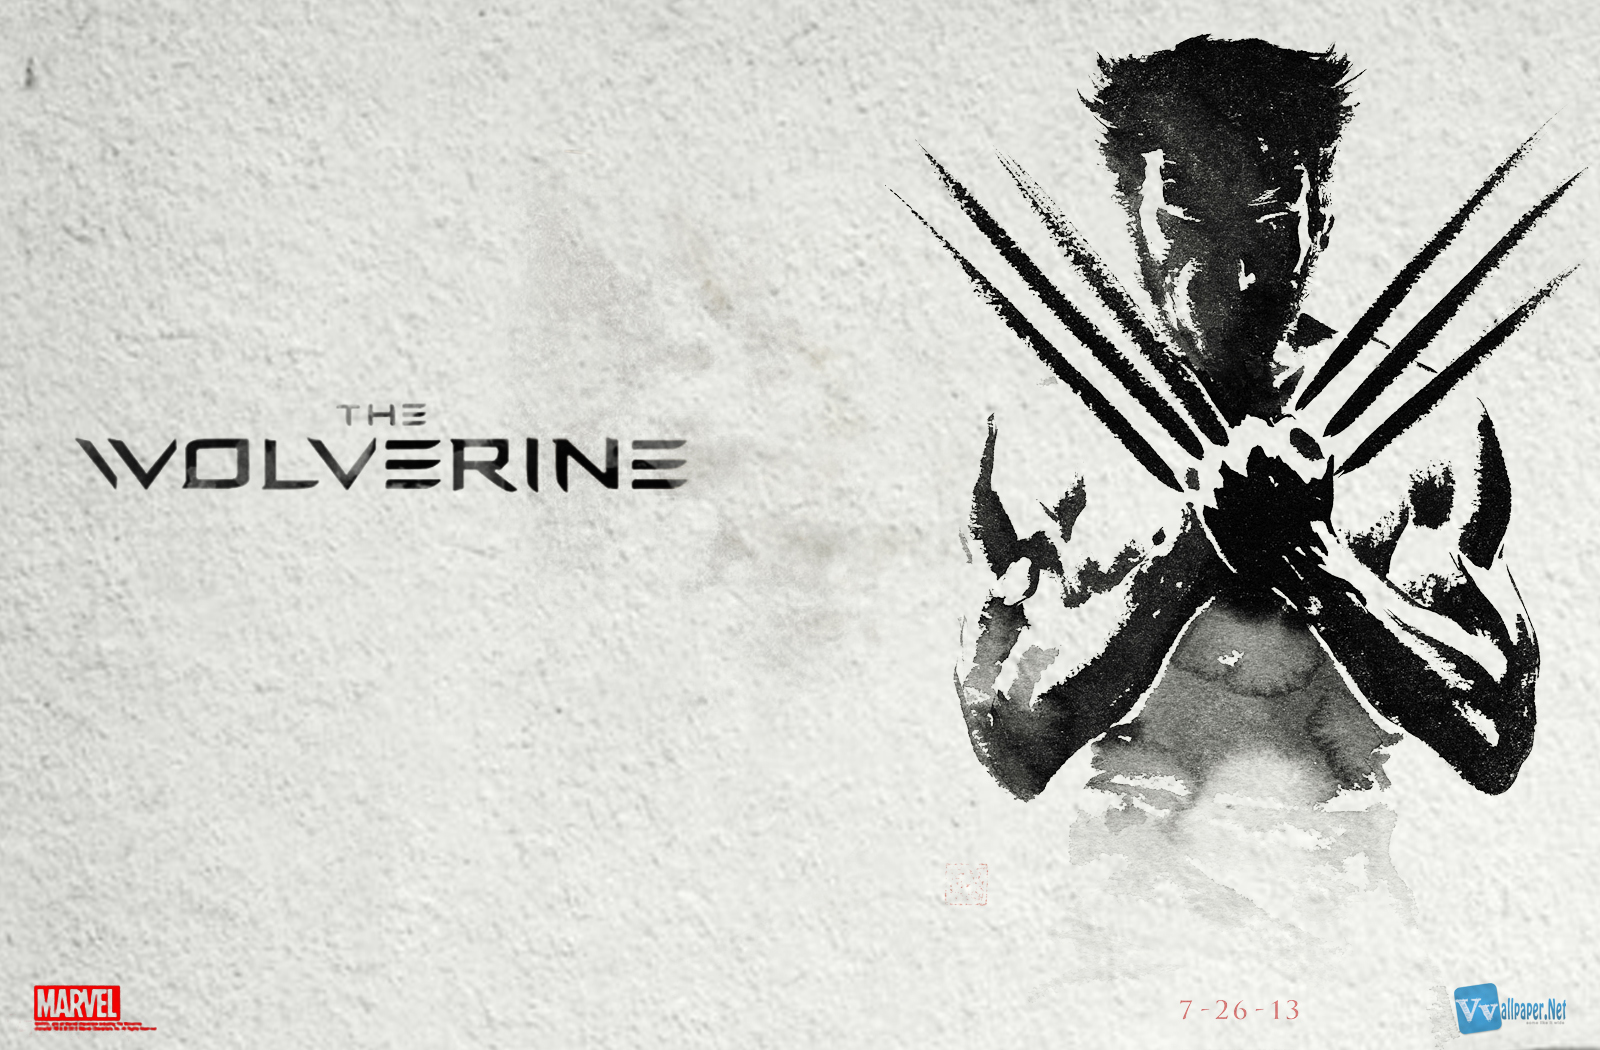 Marvel The Wolverine Movie HD Poster